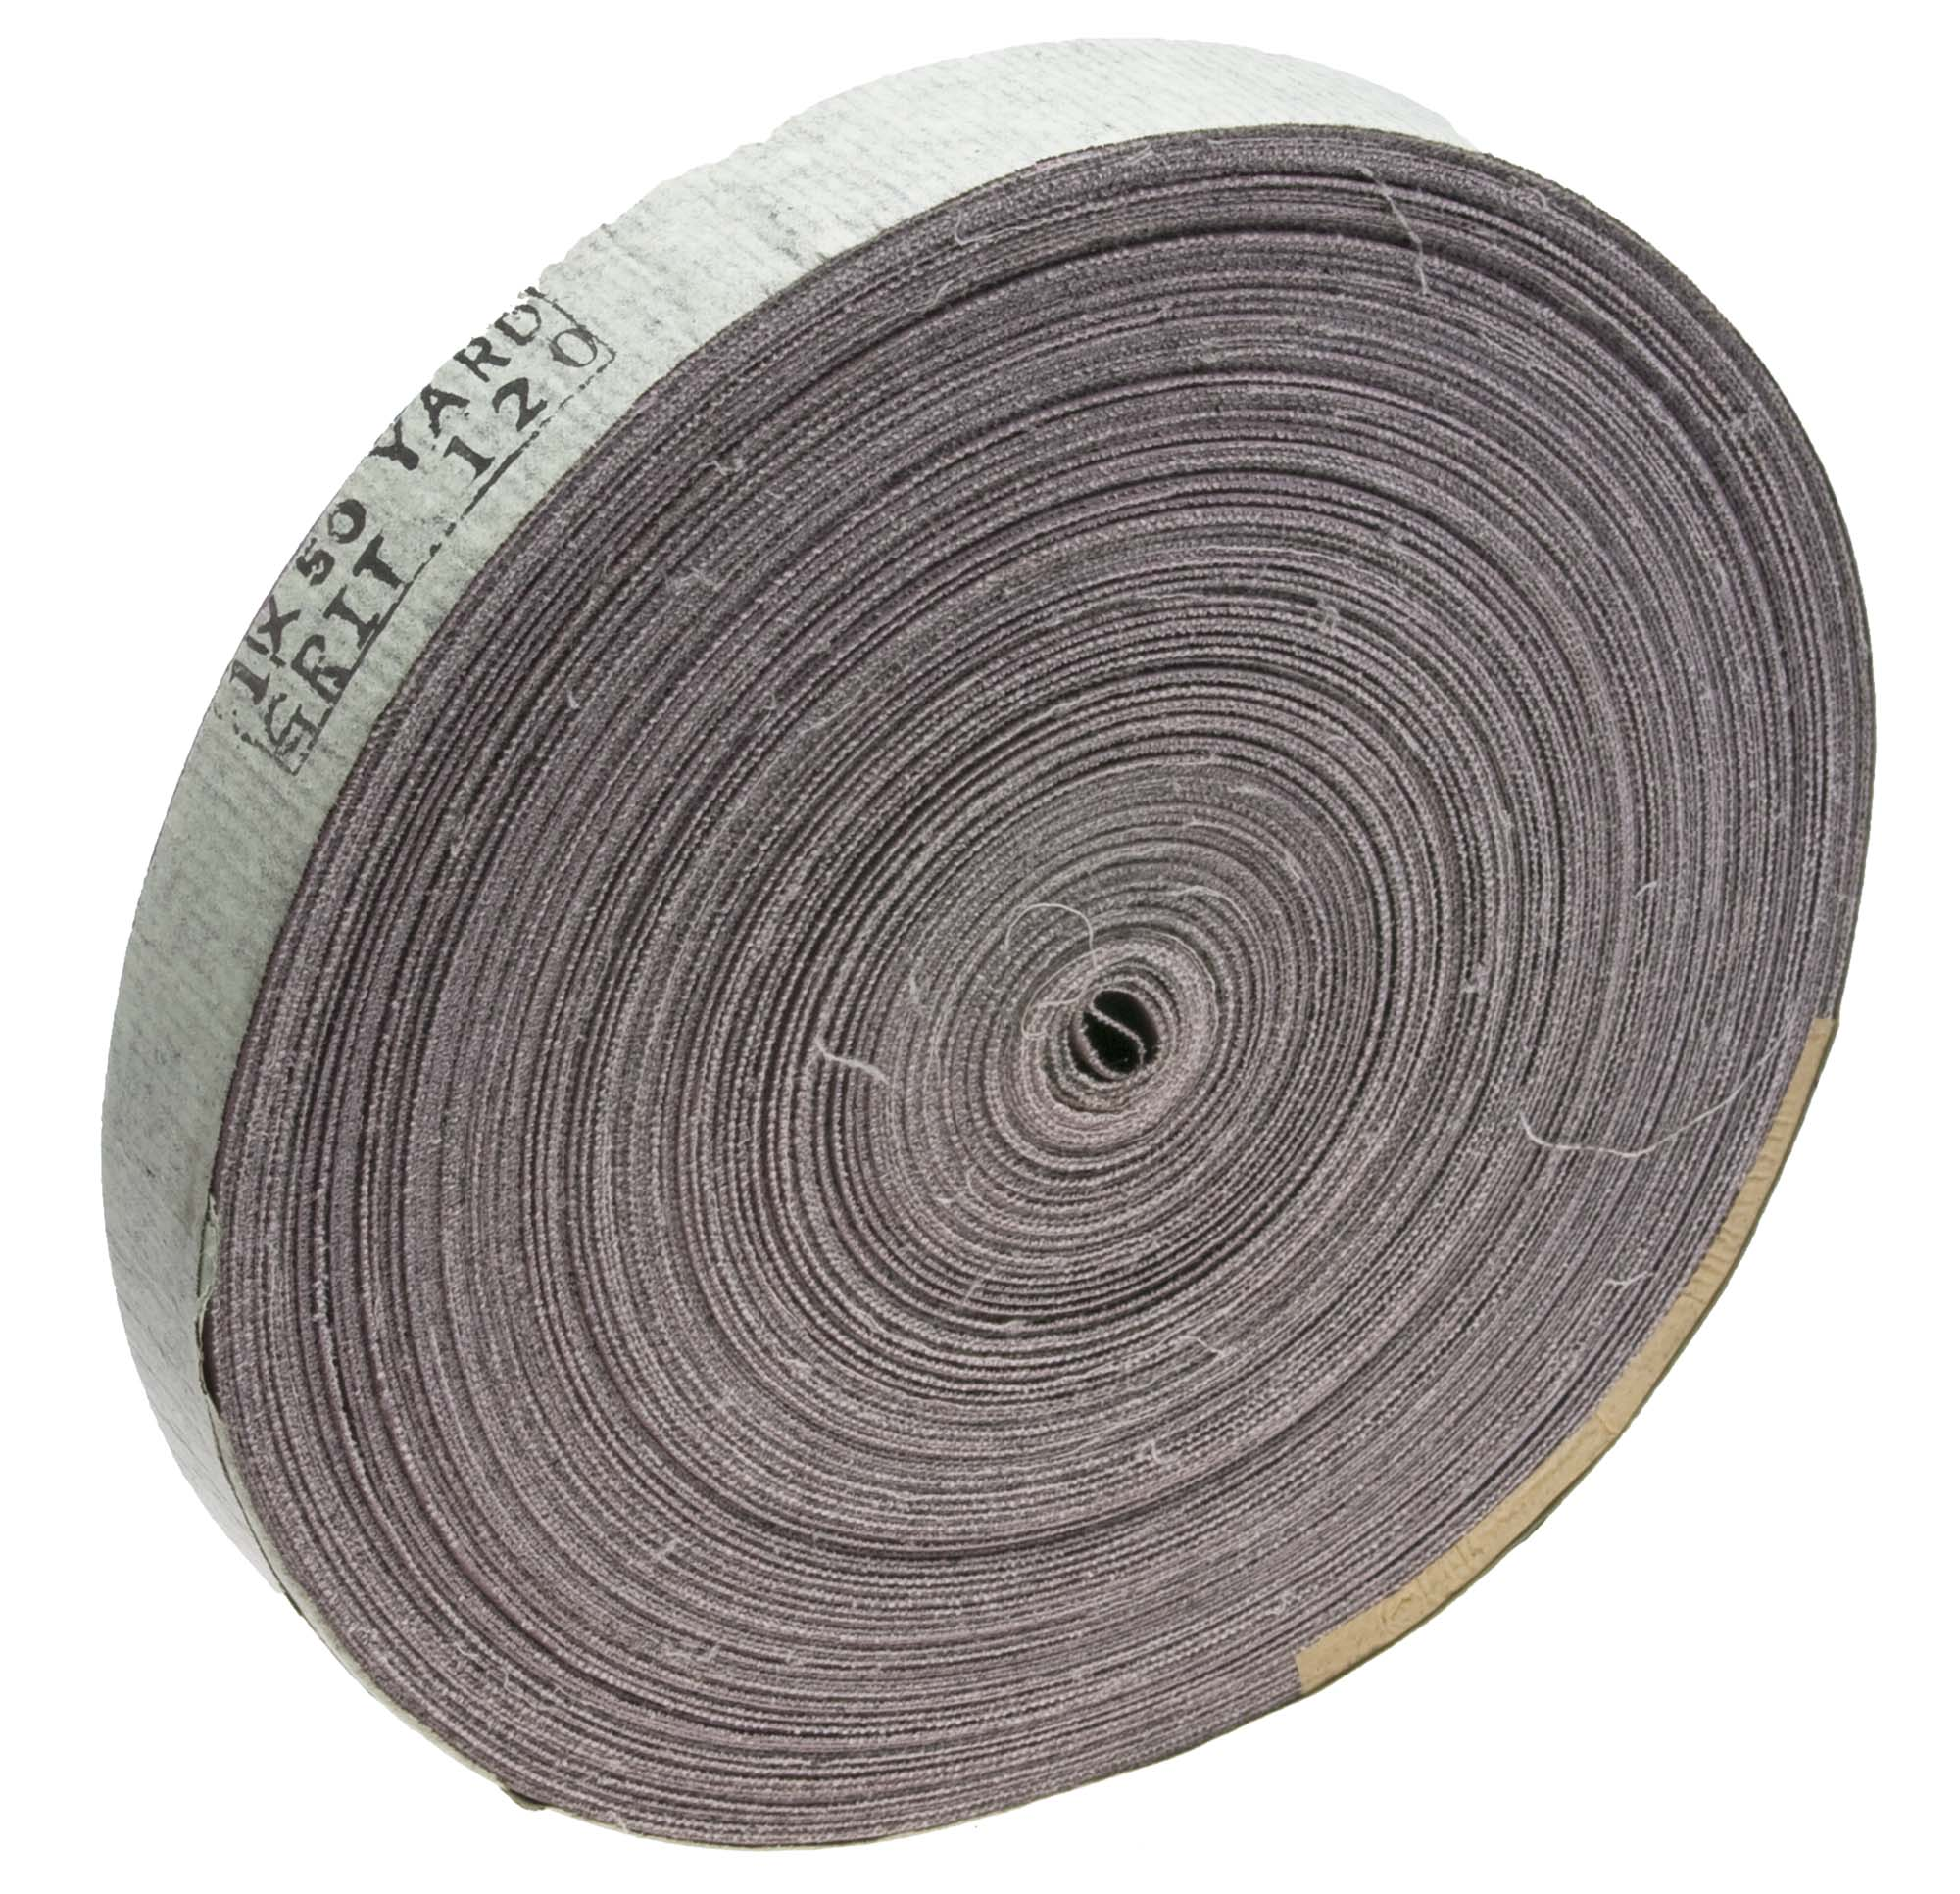 2 In x 50 Grit Import Aloxite Roll